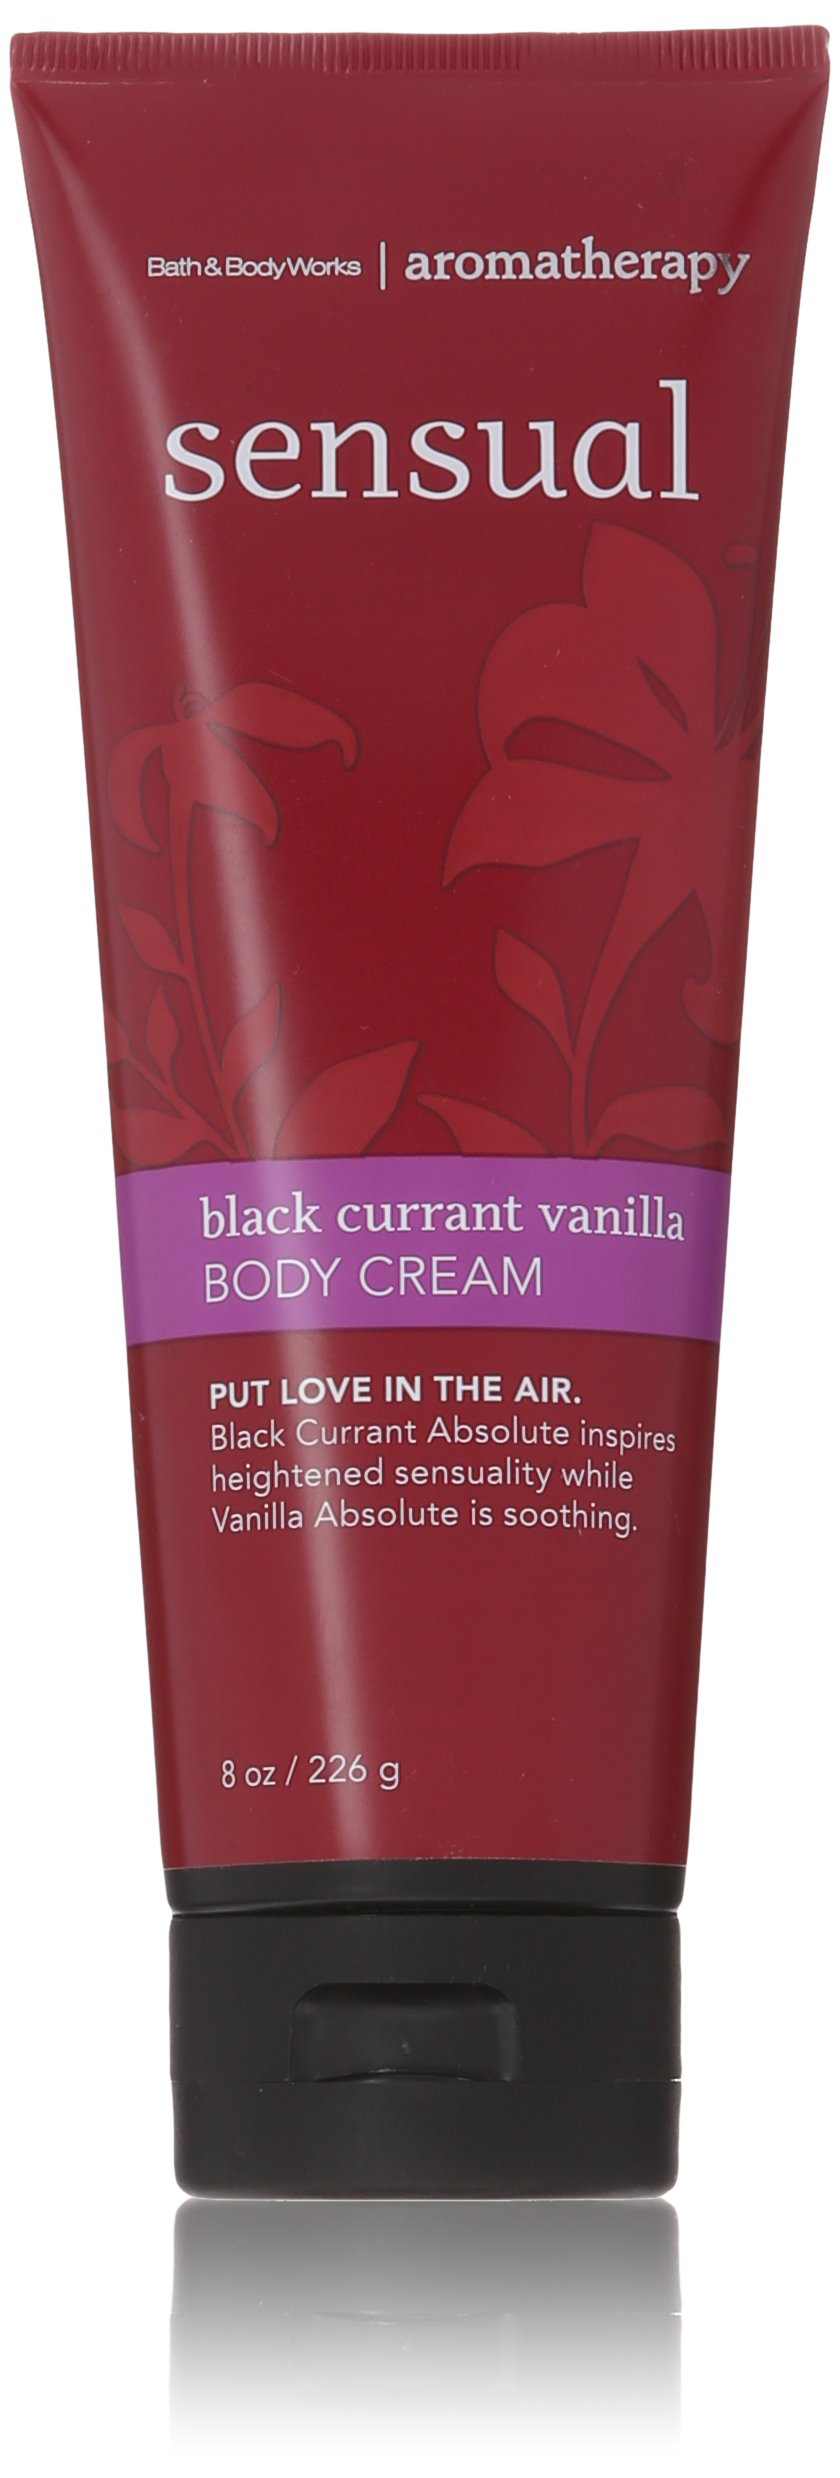 Bath And Body Works Aromatherapy Black Currant Vanilla Body Wash 10 Fl Oz Clearance Price Mixed Items